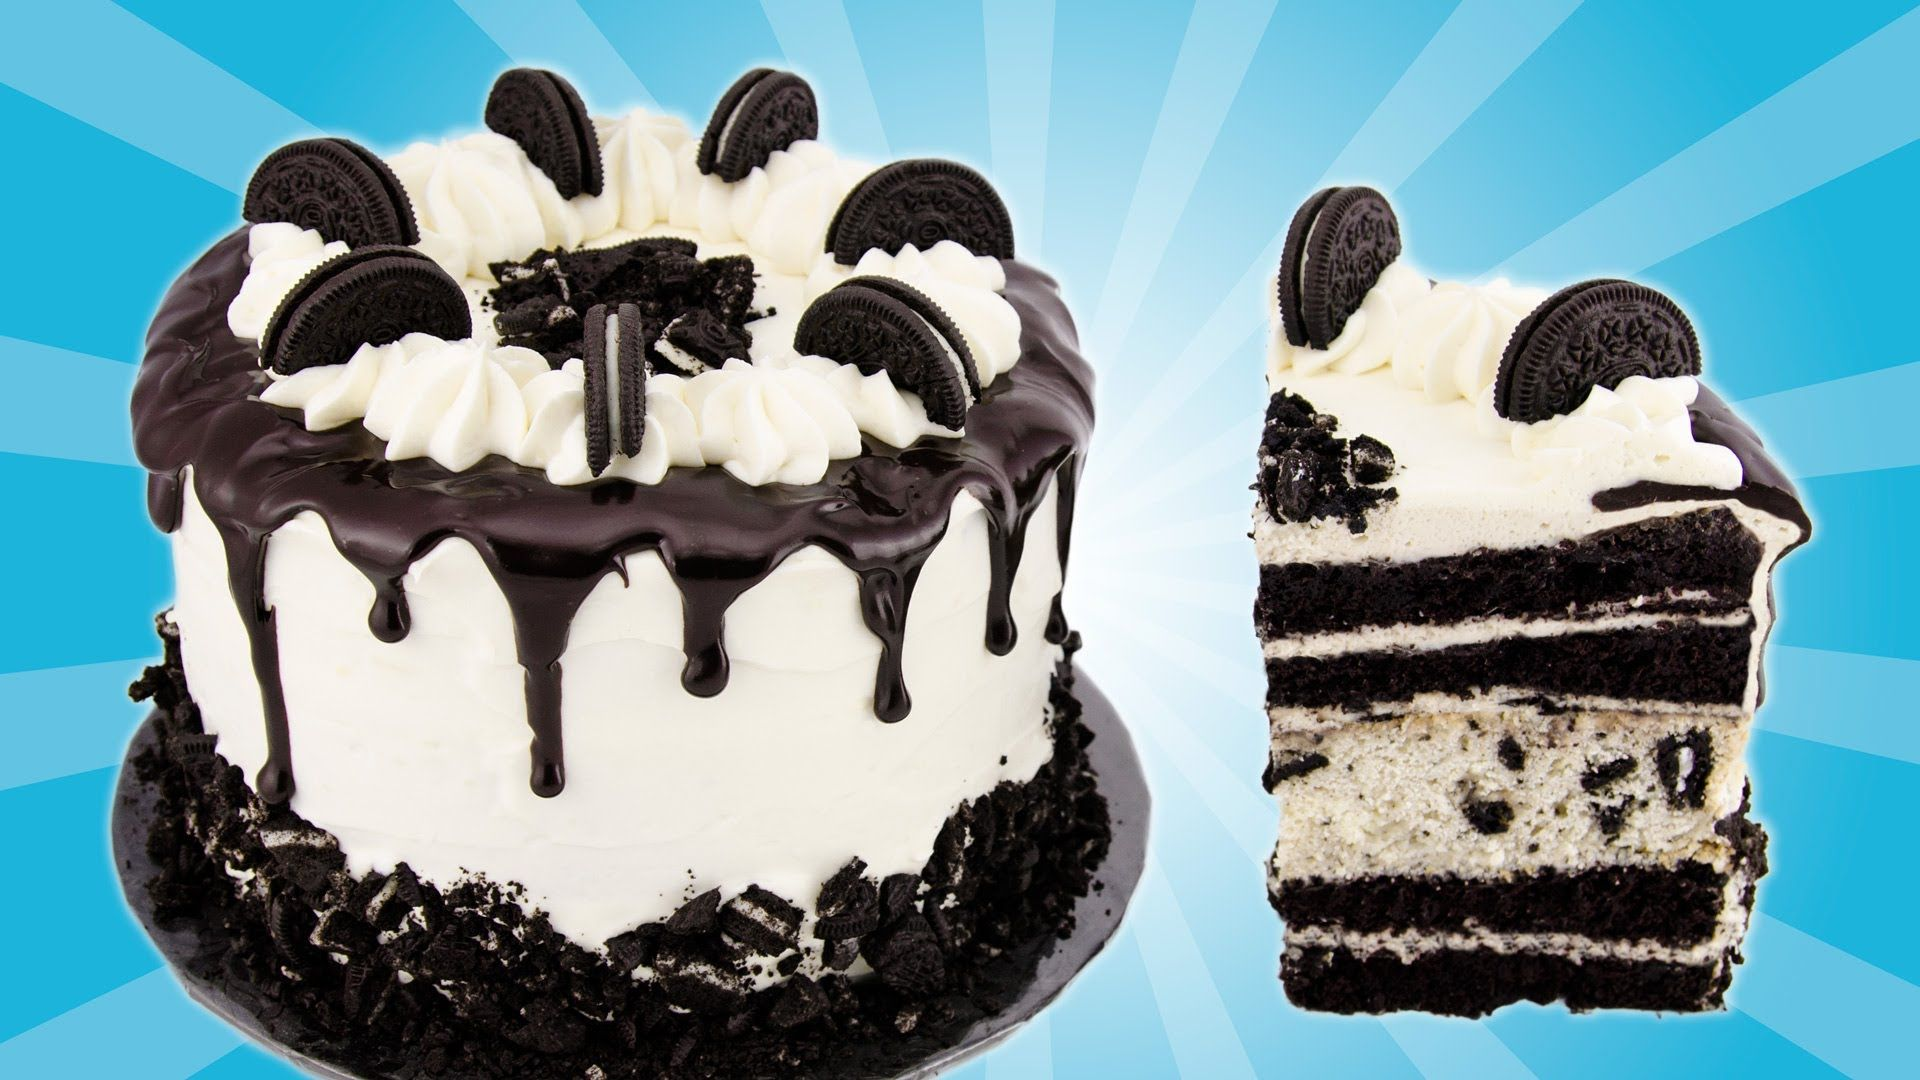 Pin By Danielle L Green On Nom Noms Oreo Cake Recipes Oreo Cake Cookies Cupcakes And Cardio